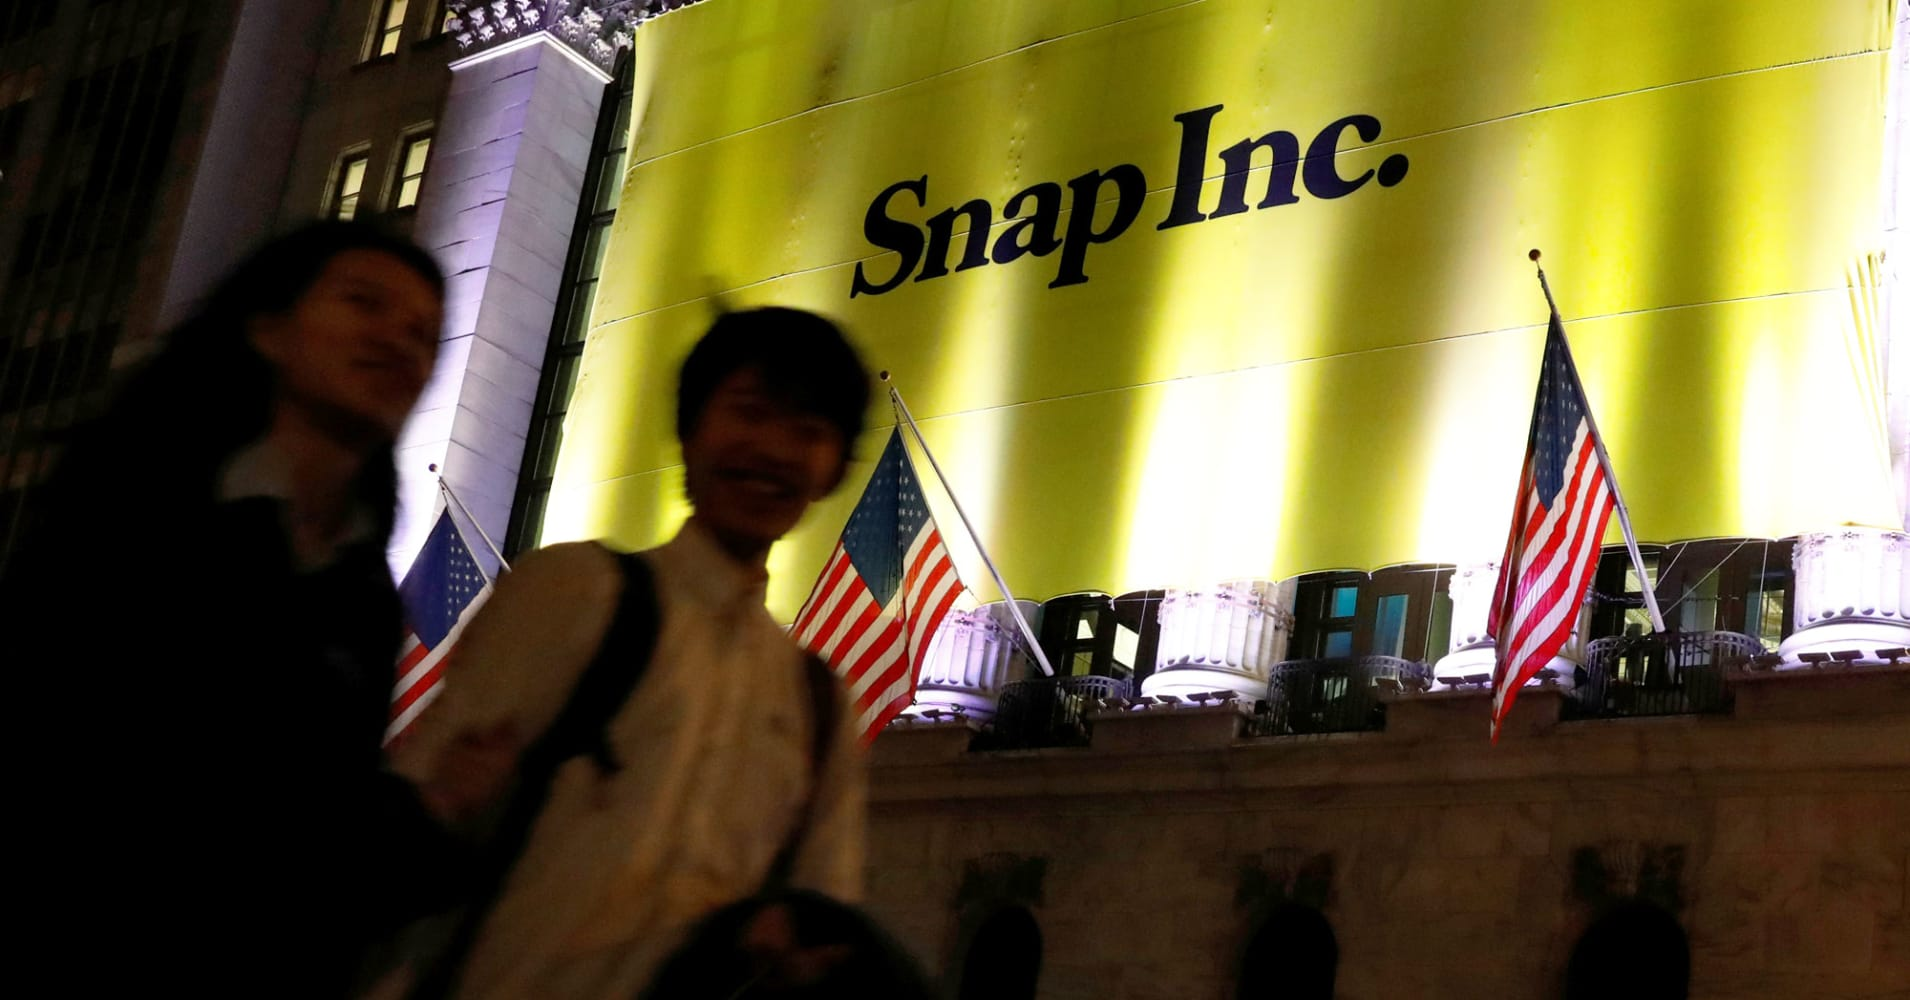 Snap Shares Plunge After Analysts Cut Price Targets, Citing Instagram Competition